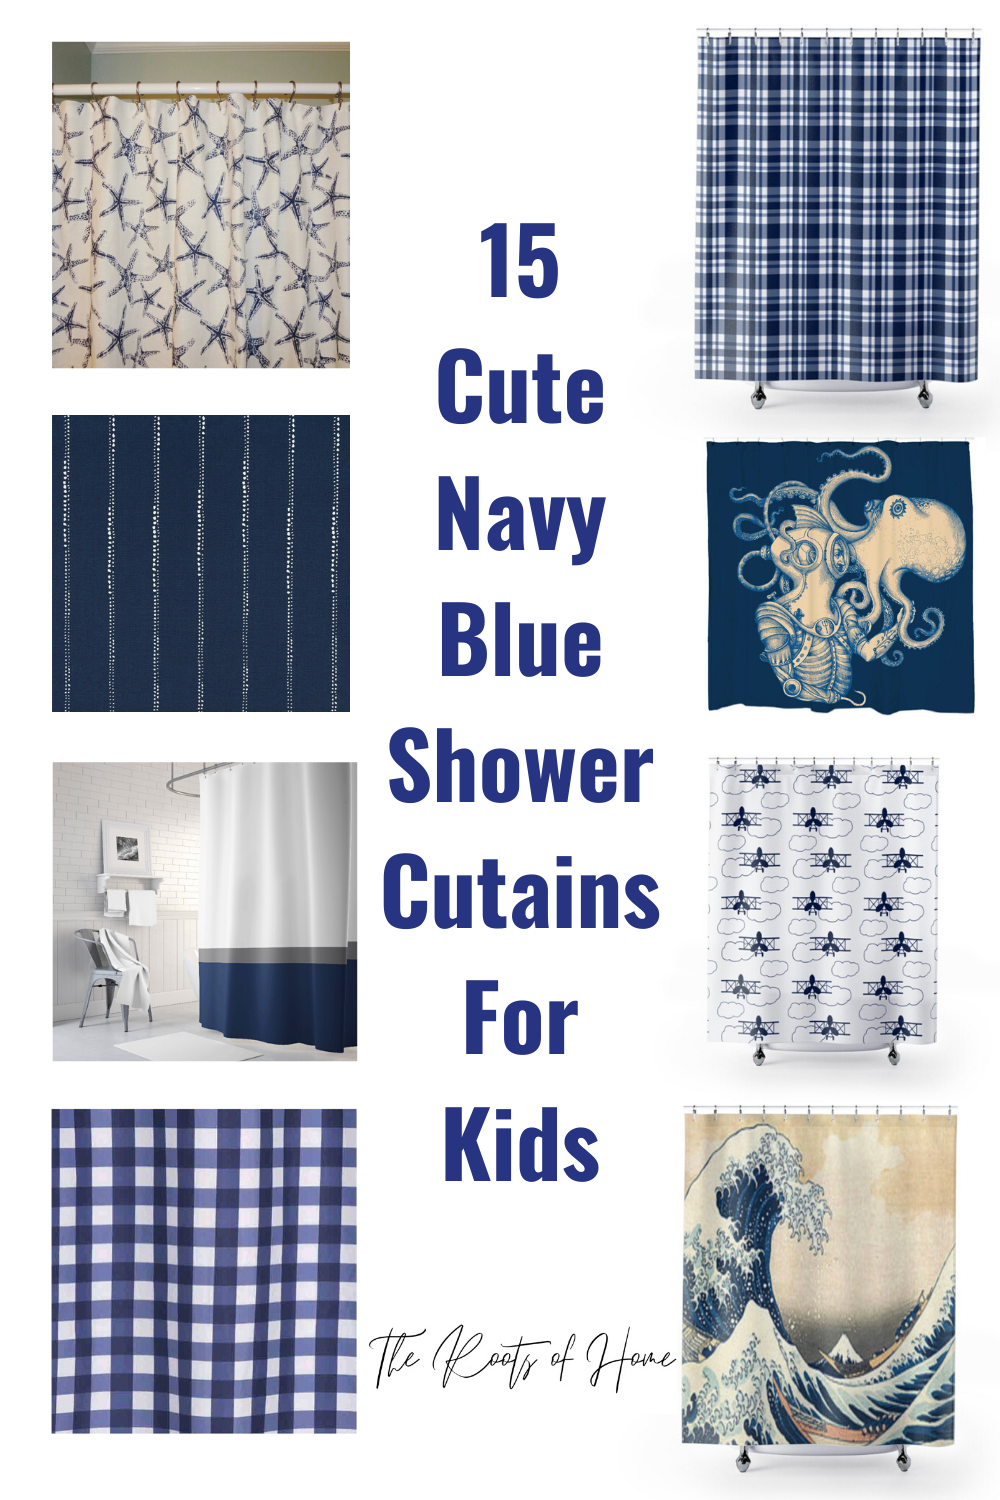 15 Cute Navy Blue and White Shower Curtains for Gender Neutral Kids' Bathrooms